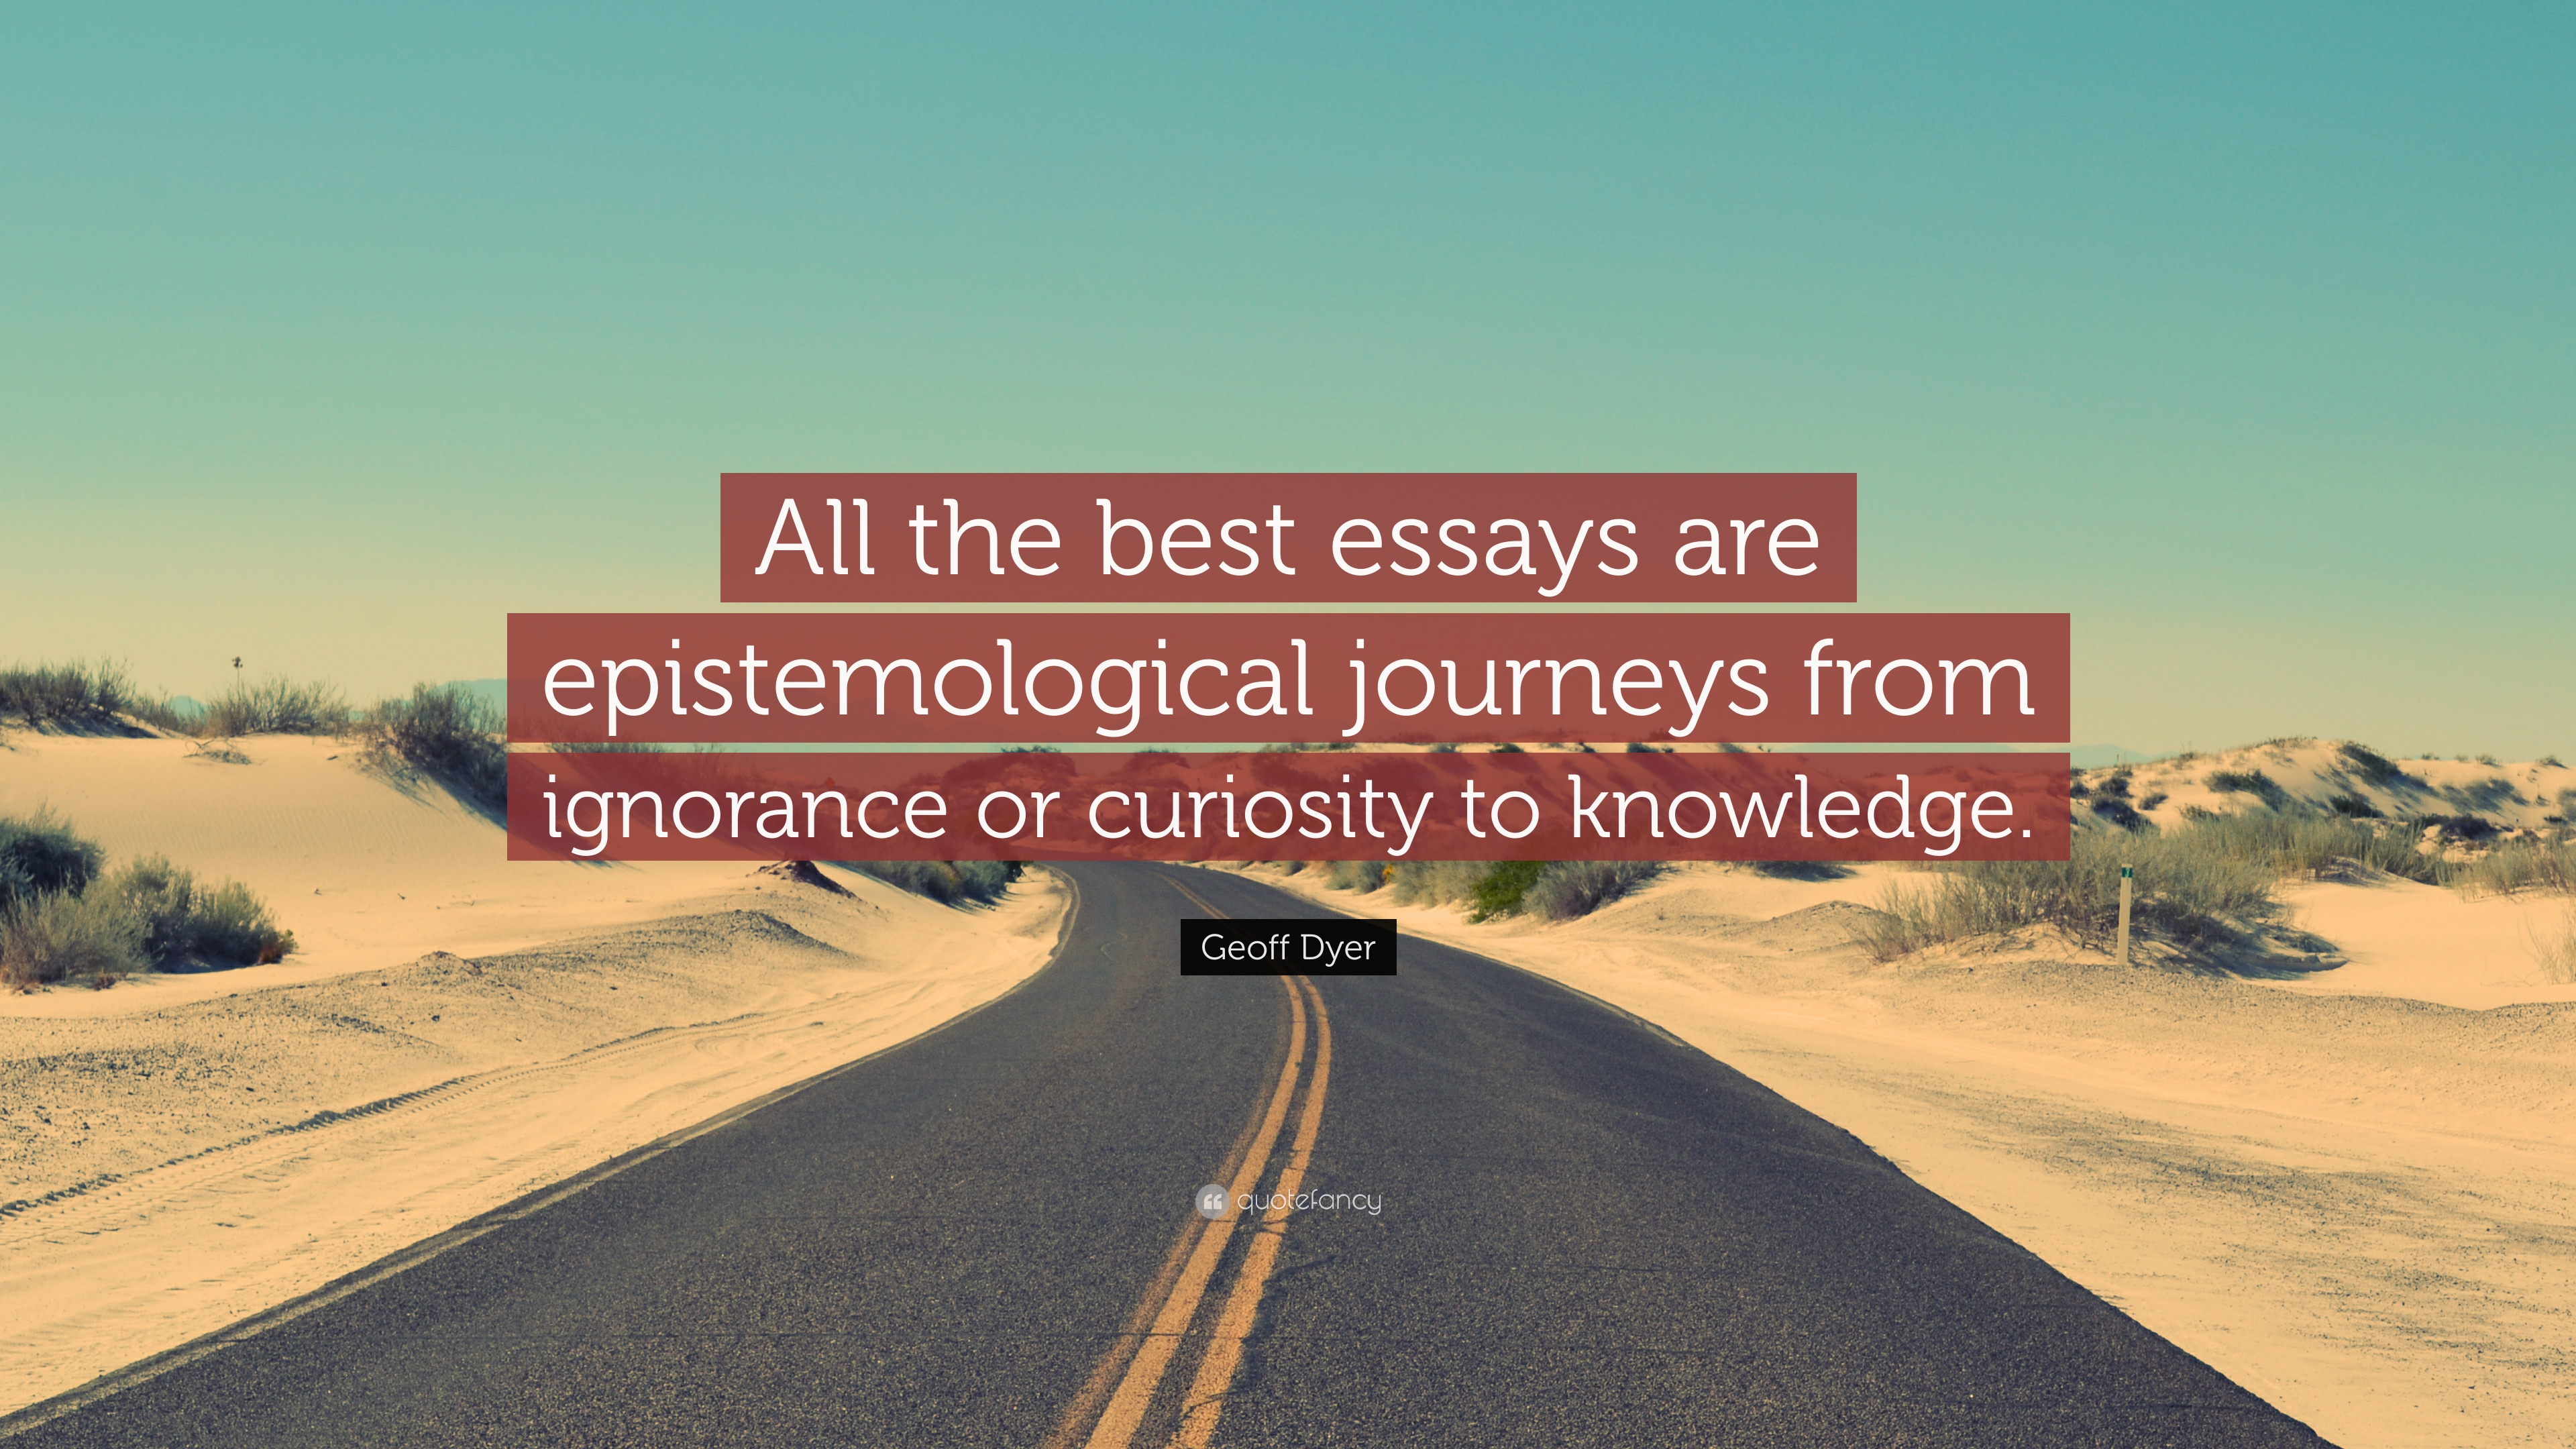 Persuasive Essays For High School Geoff Dyer Quote All The Best Essays Are Epistemological Journeys From  Ignorance Or Curiosity Essay About Health also English Literature Essay Questions Geoff Dyer Quote All The Best Essays Are Epistemological Journeys  Mental Health Essay